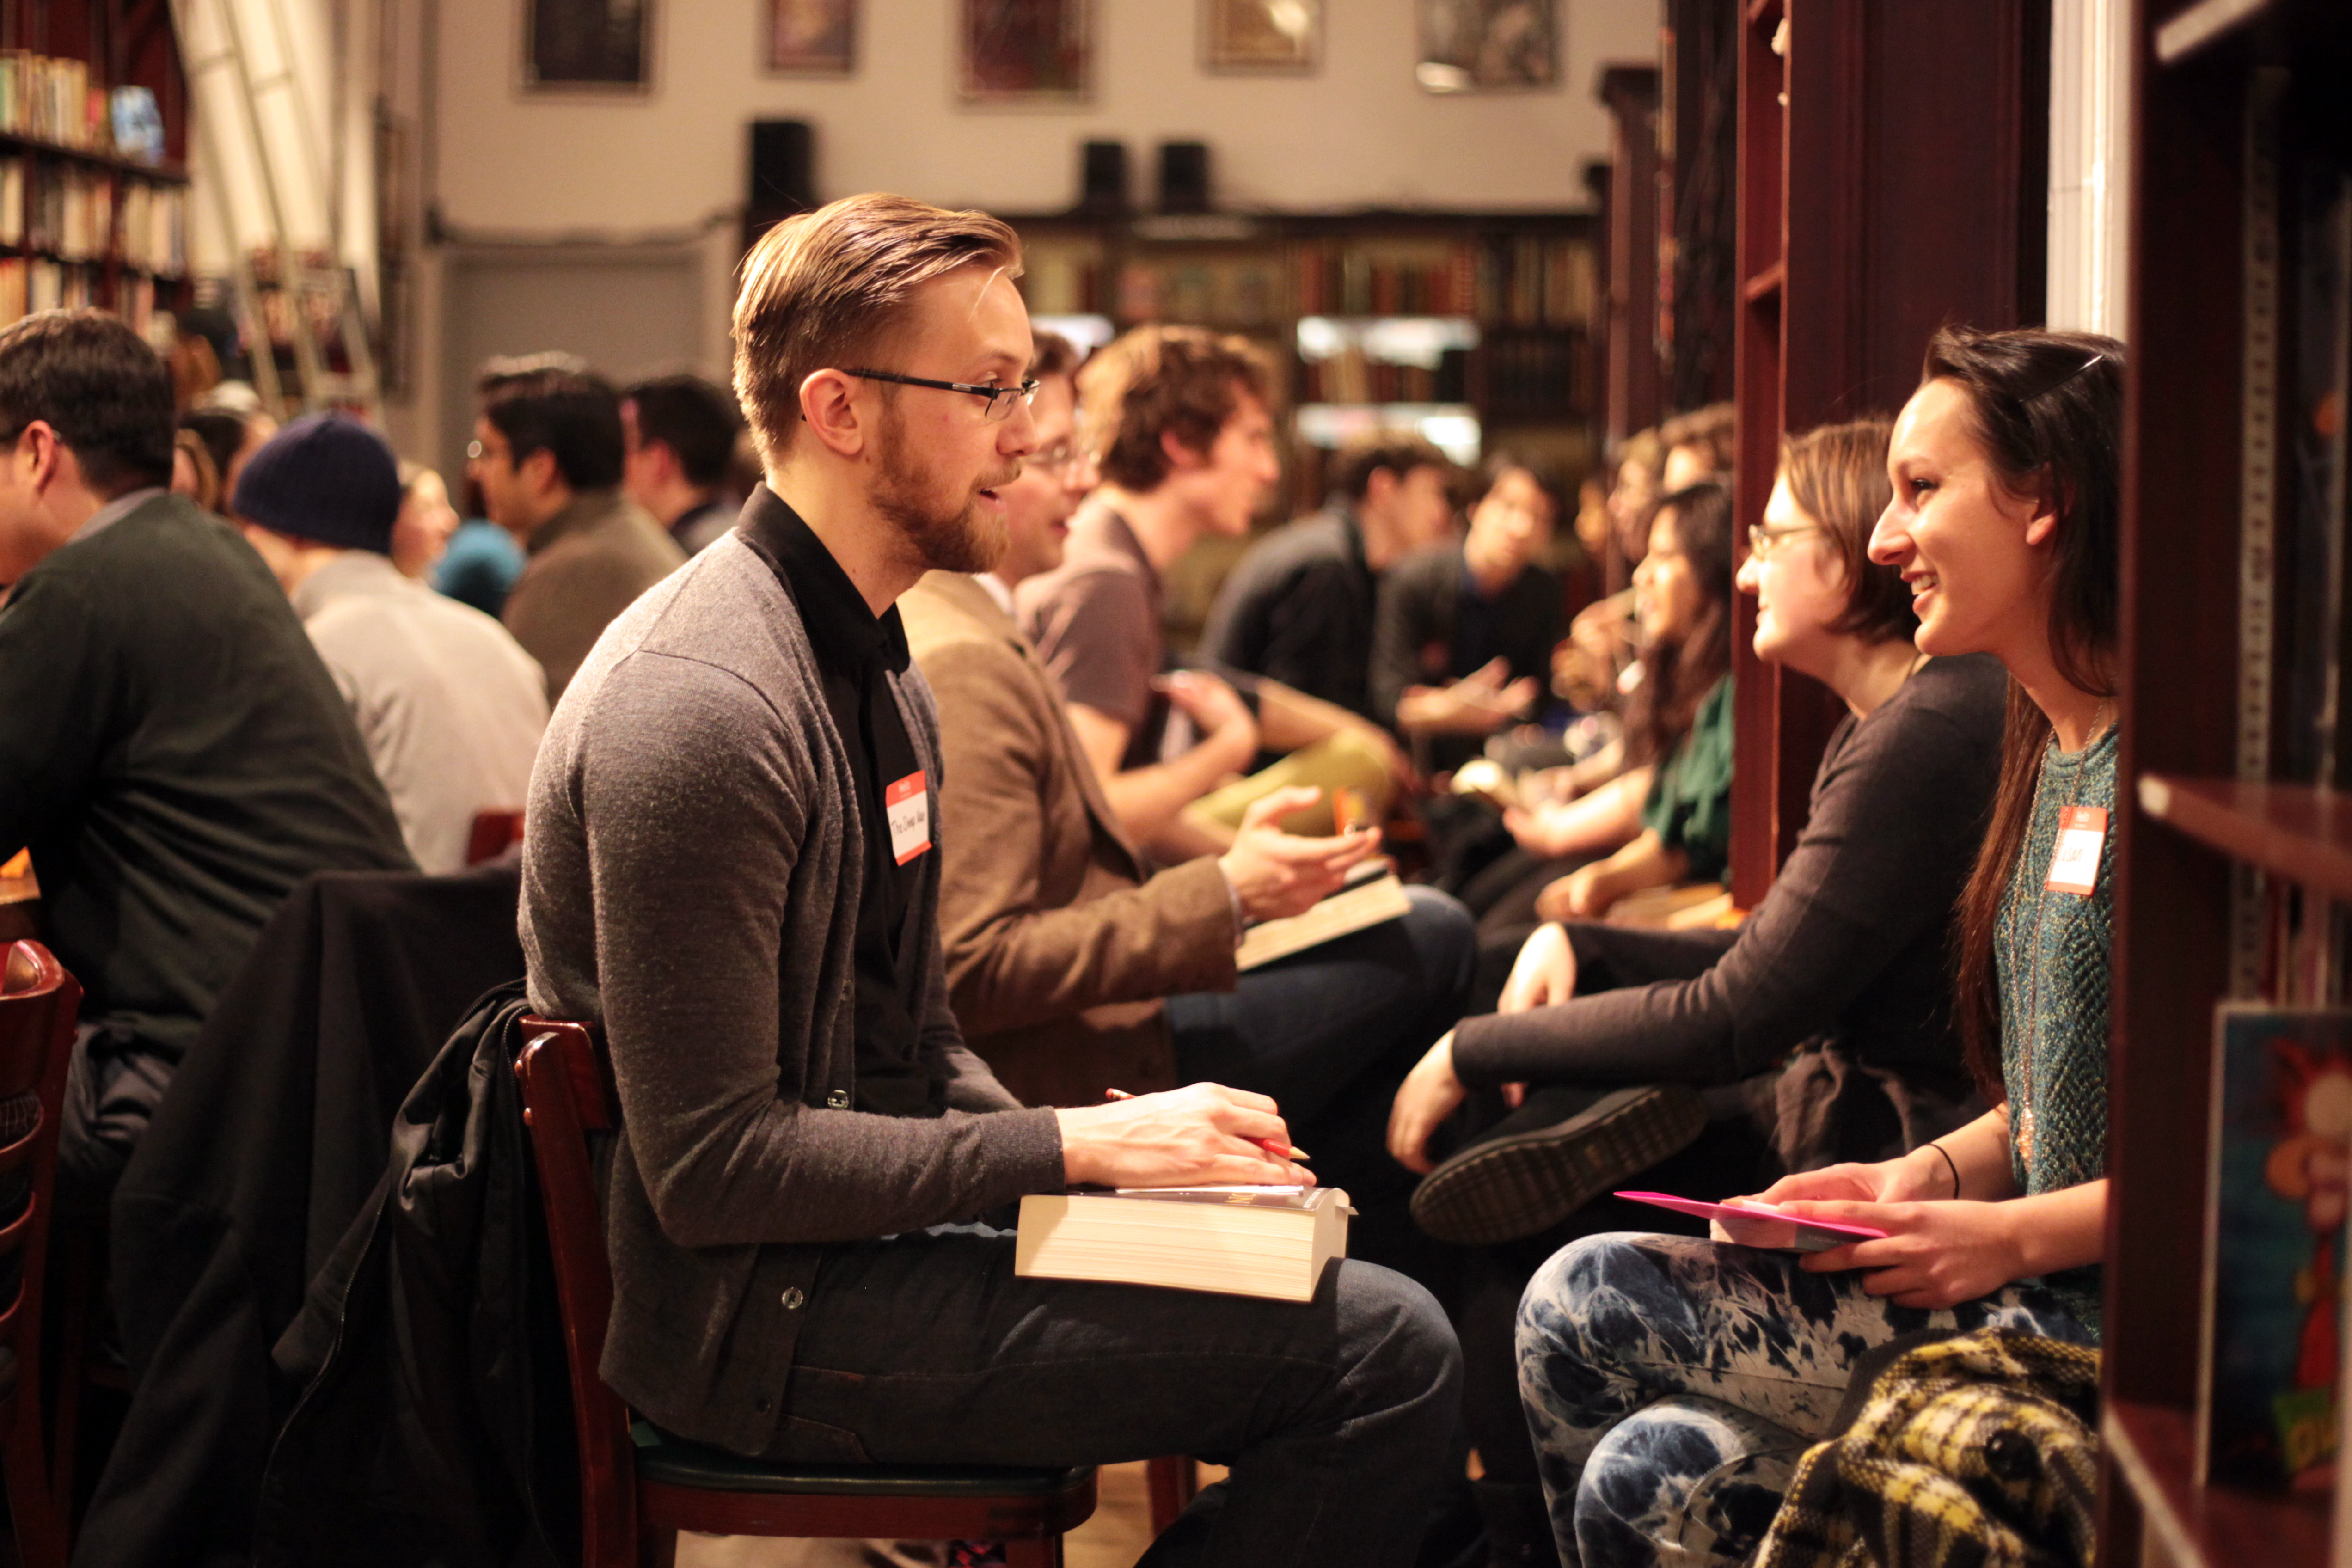 Speed Dating Events Help Regional Journalism Students Gain Confidence And Industry Contacts